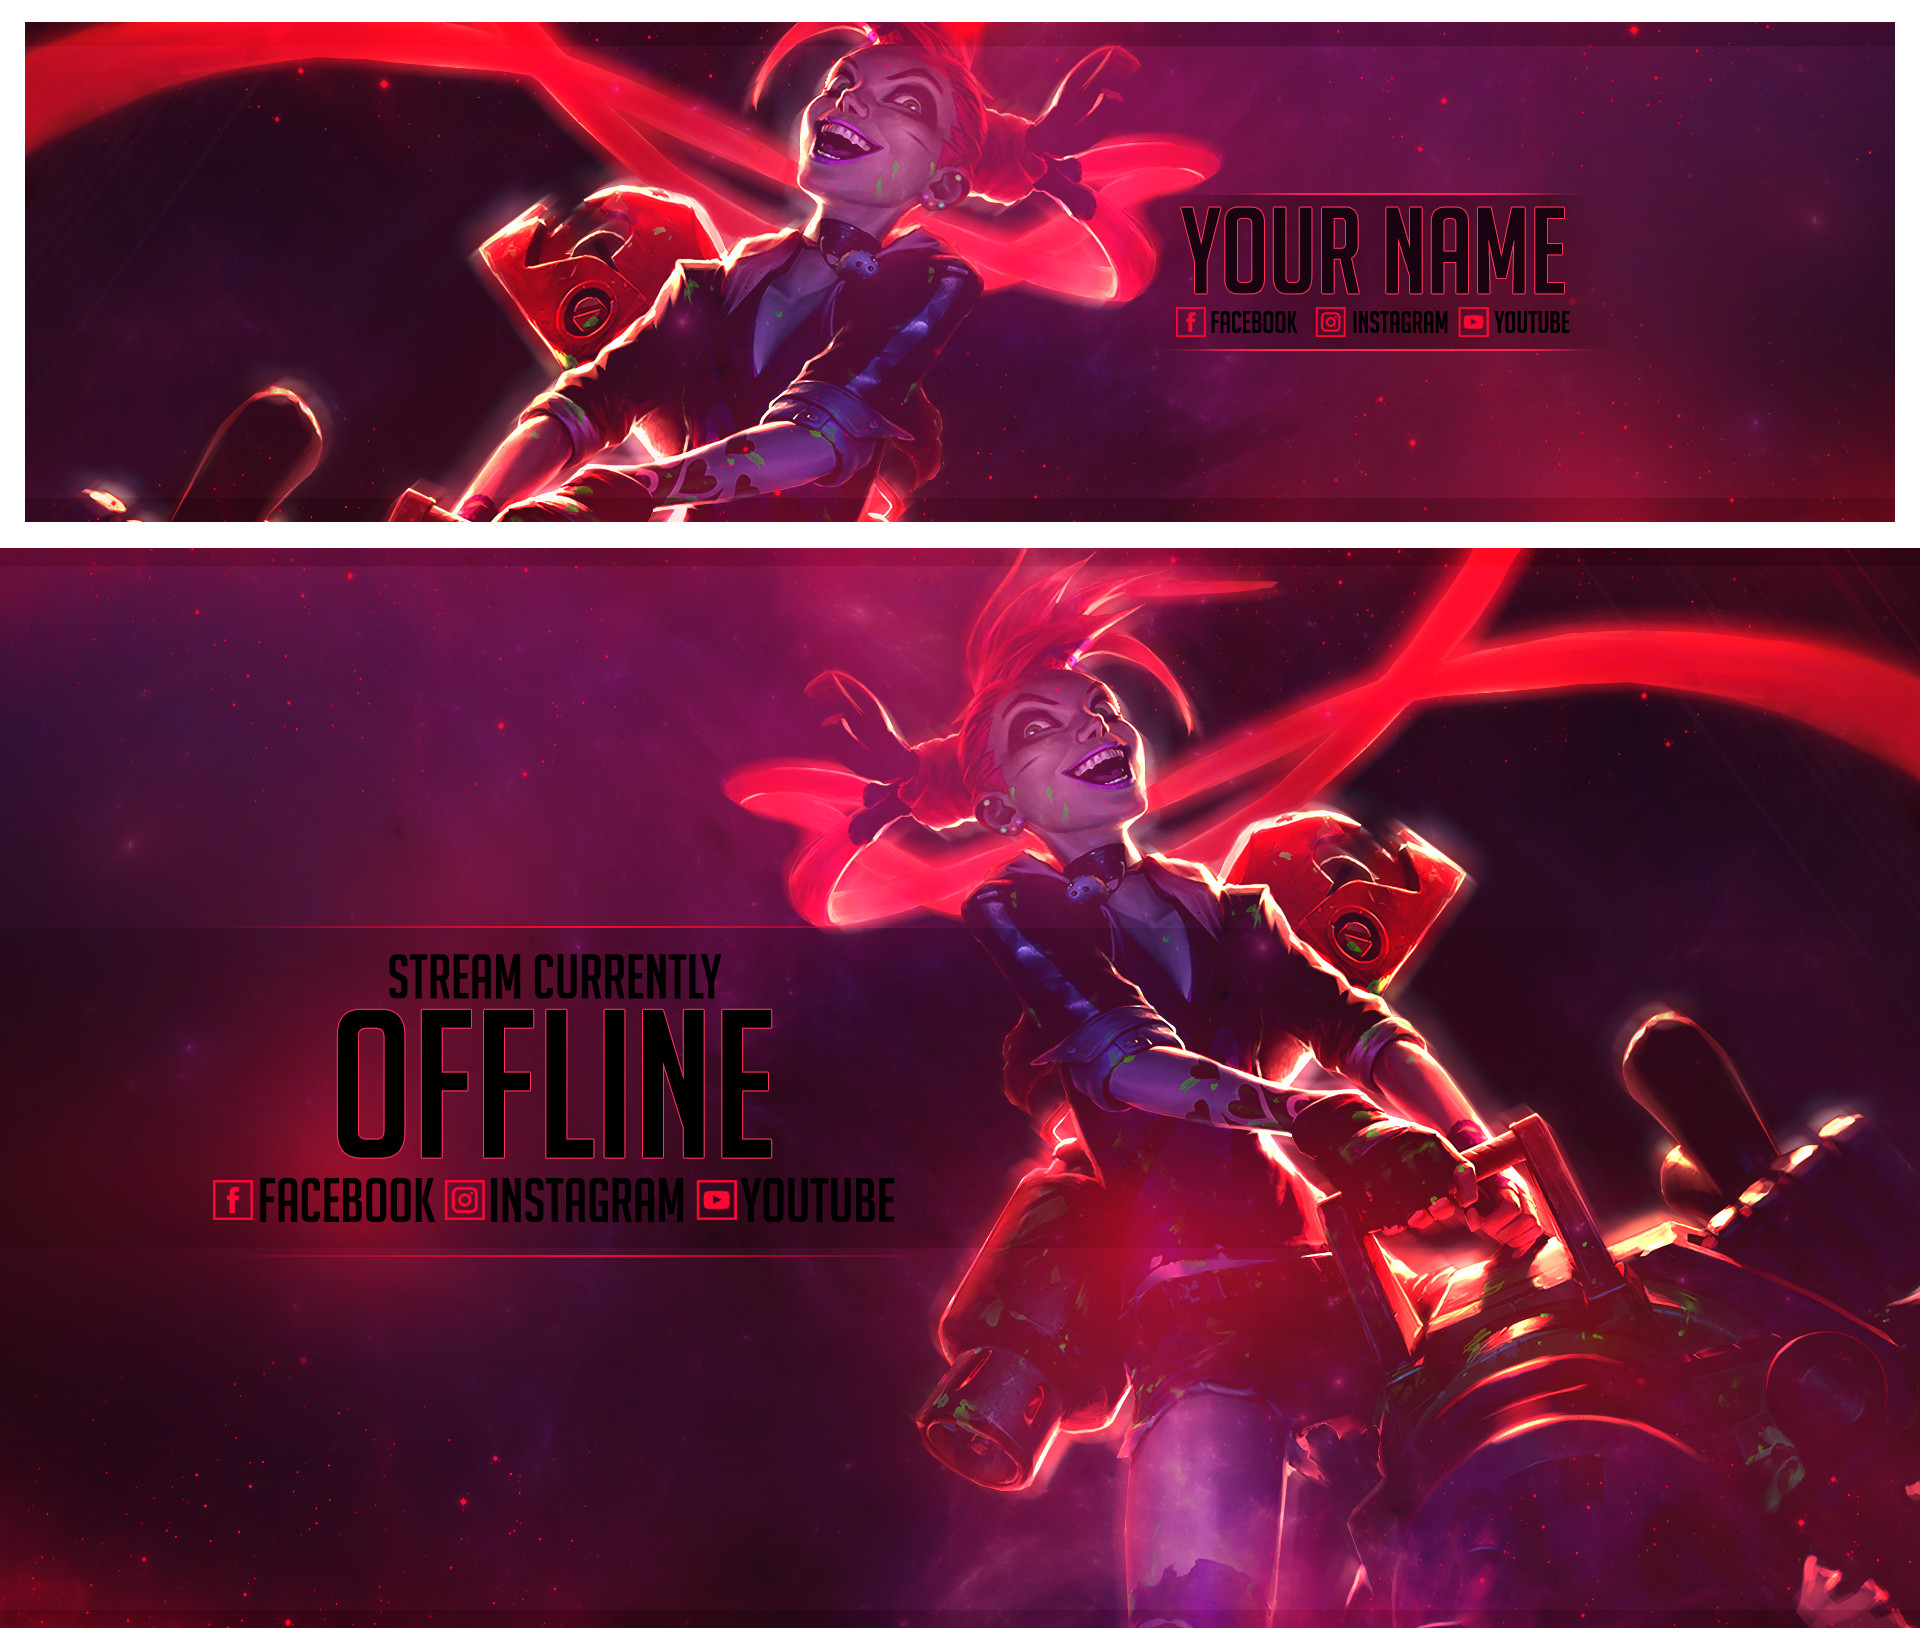 1920x1650 ... Slayer Jinx - Banner and Offline Screen by Psychomilla